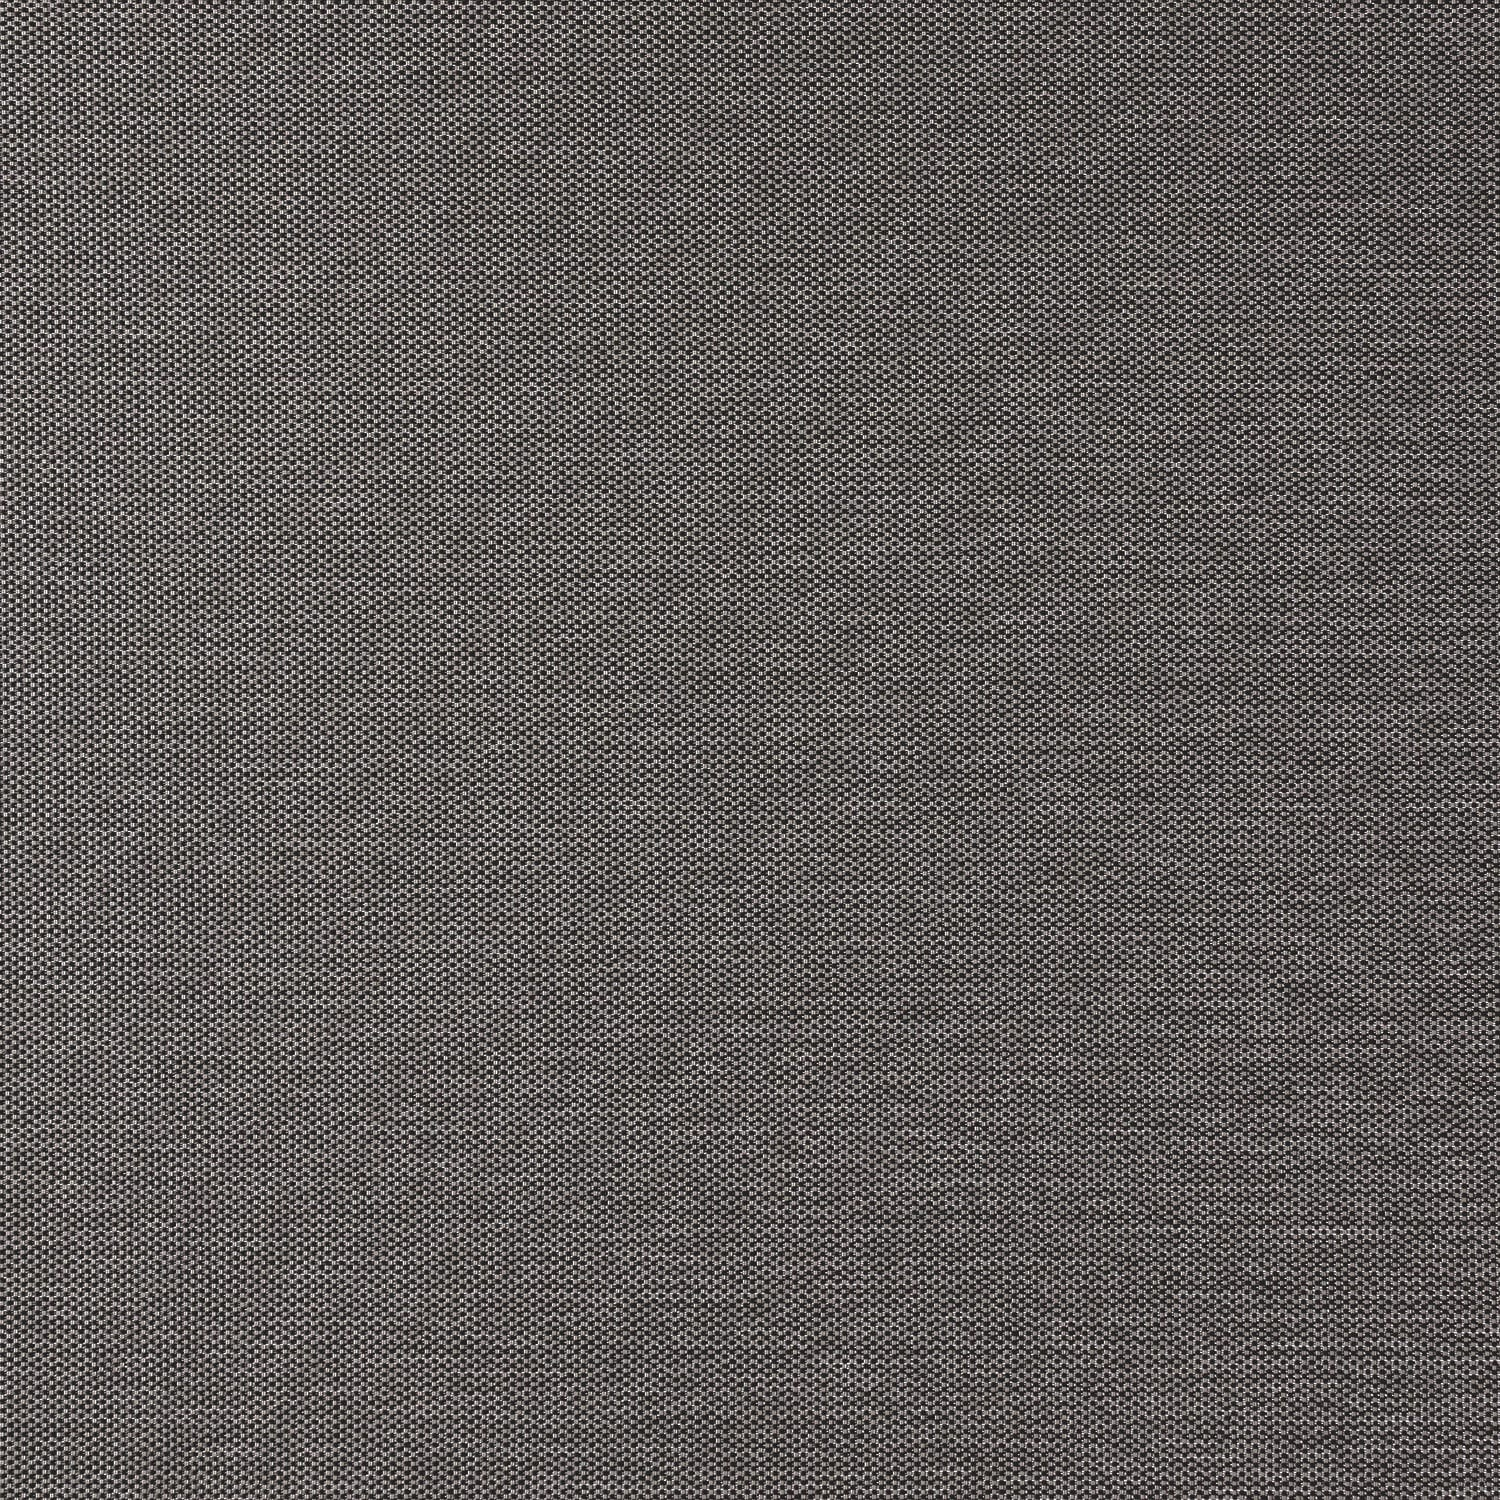 Stanford Charcoal Eton Textured Light Filtering Roller Shade Swatch